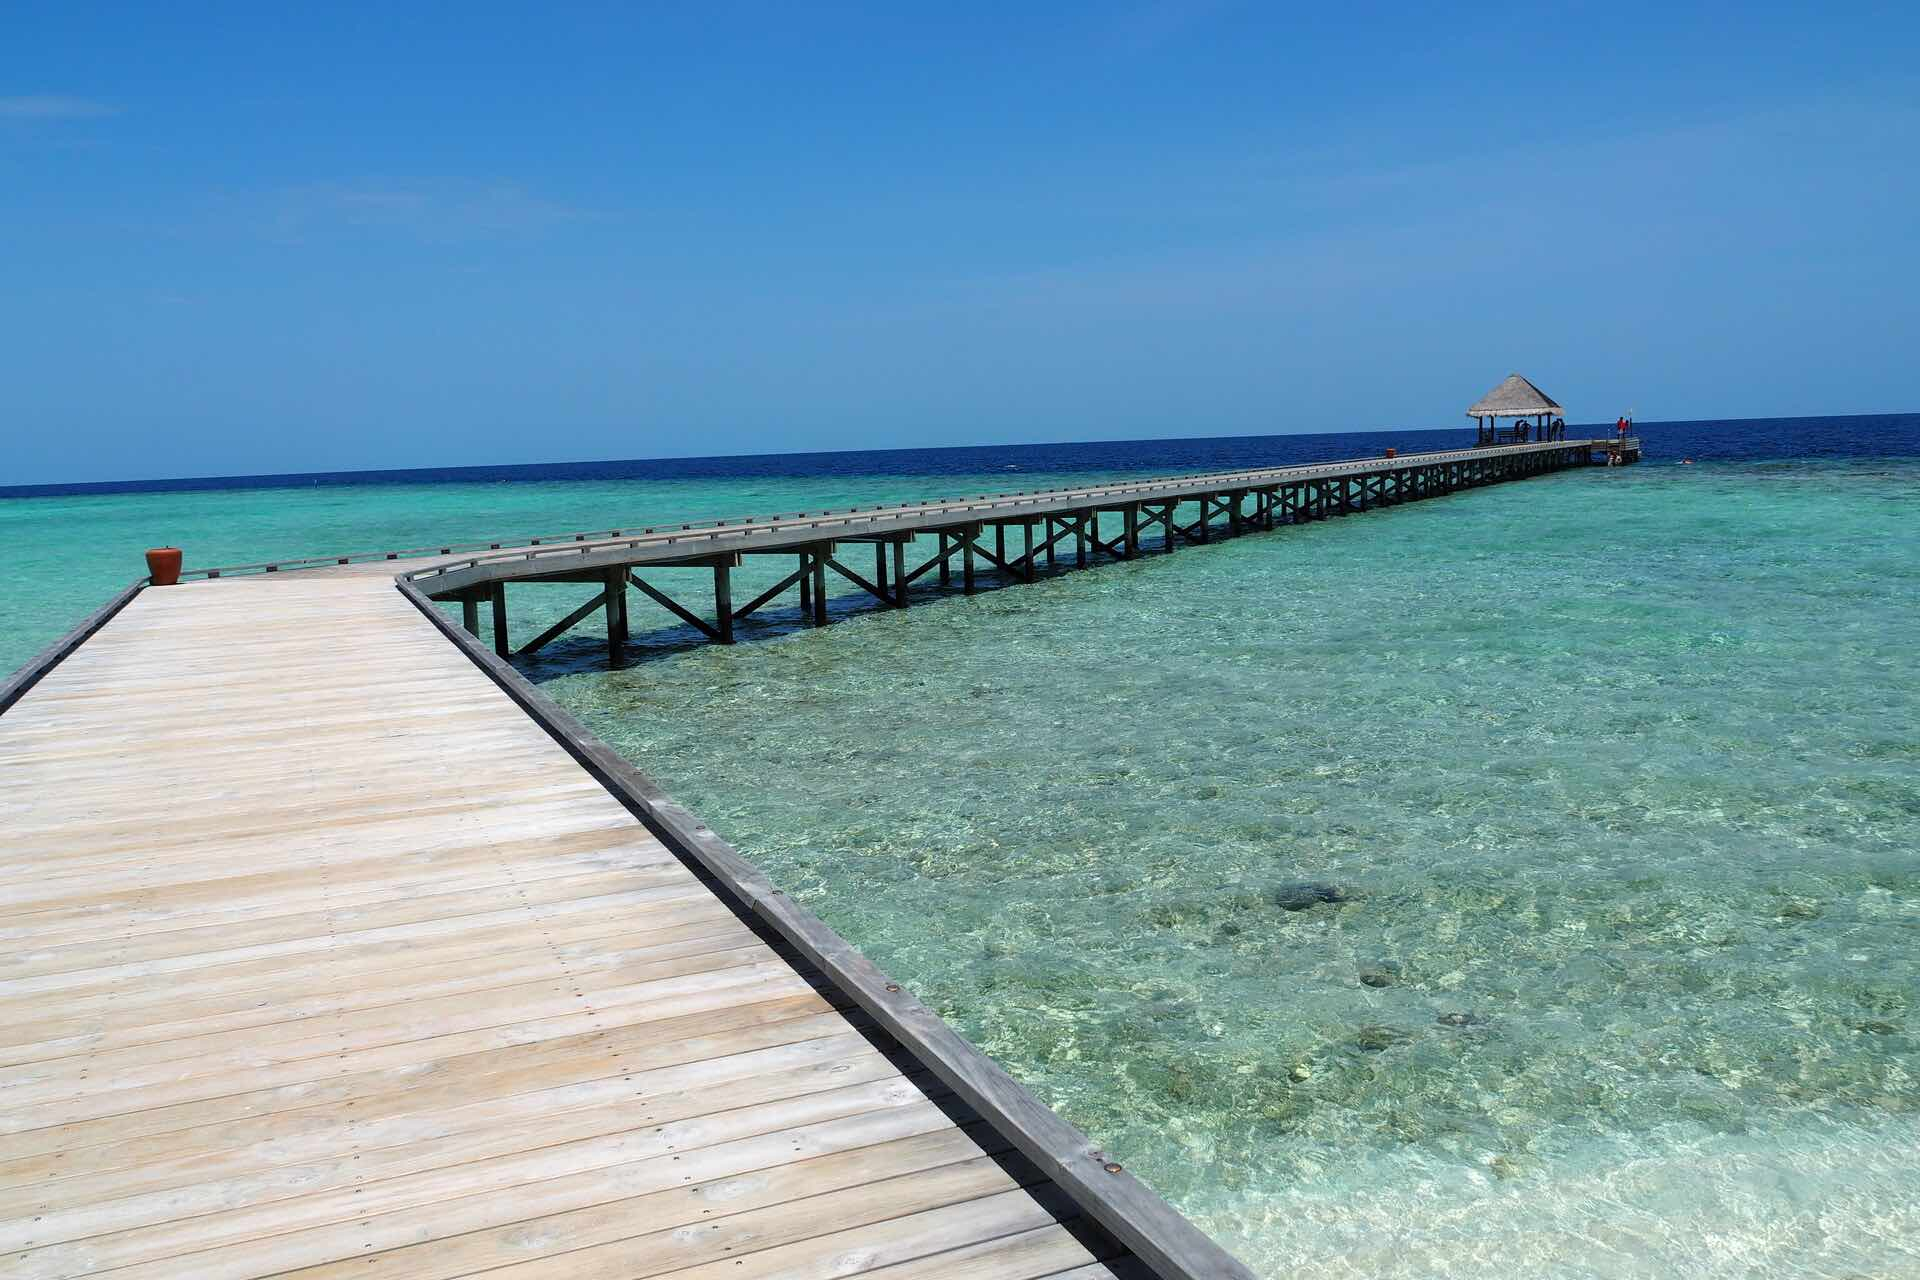 maldives-oblu-by-atmosphere-at-helengeli-jetty-holiday-review-feedback-invite-to-paradise-quentin-kate-hulm.jpg